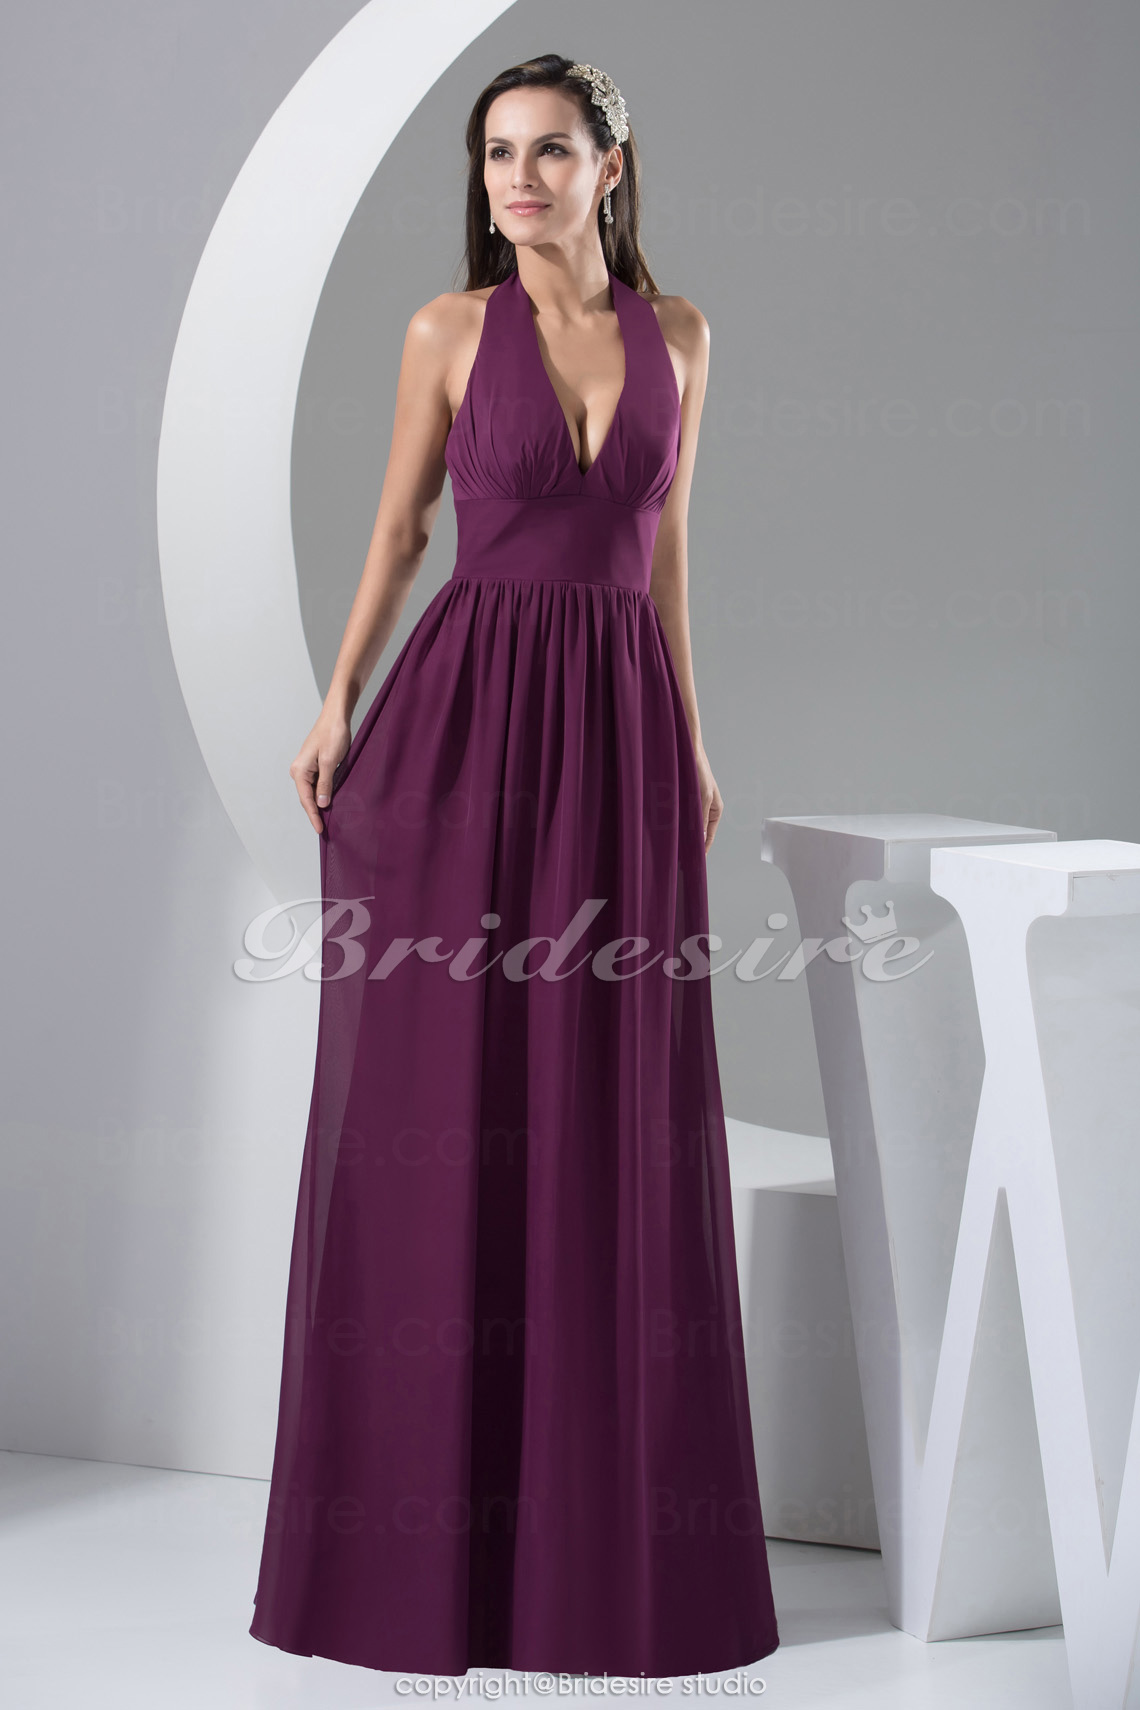 A-line Halter Floor-length Sleeveless Chiffon Bridesmaid Dress